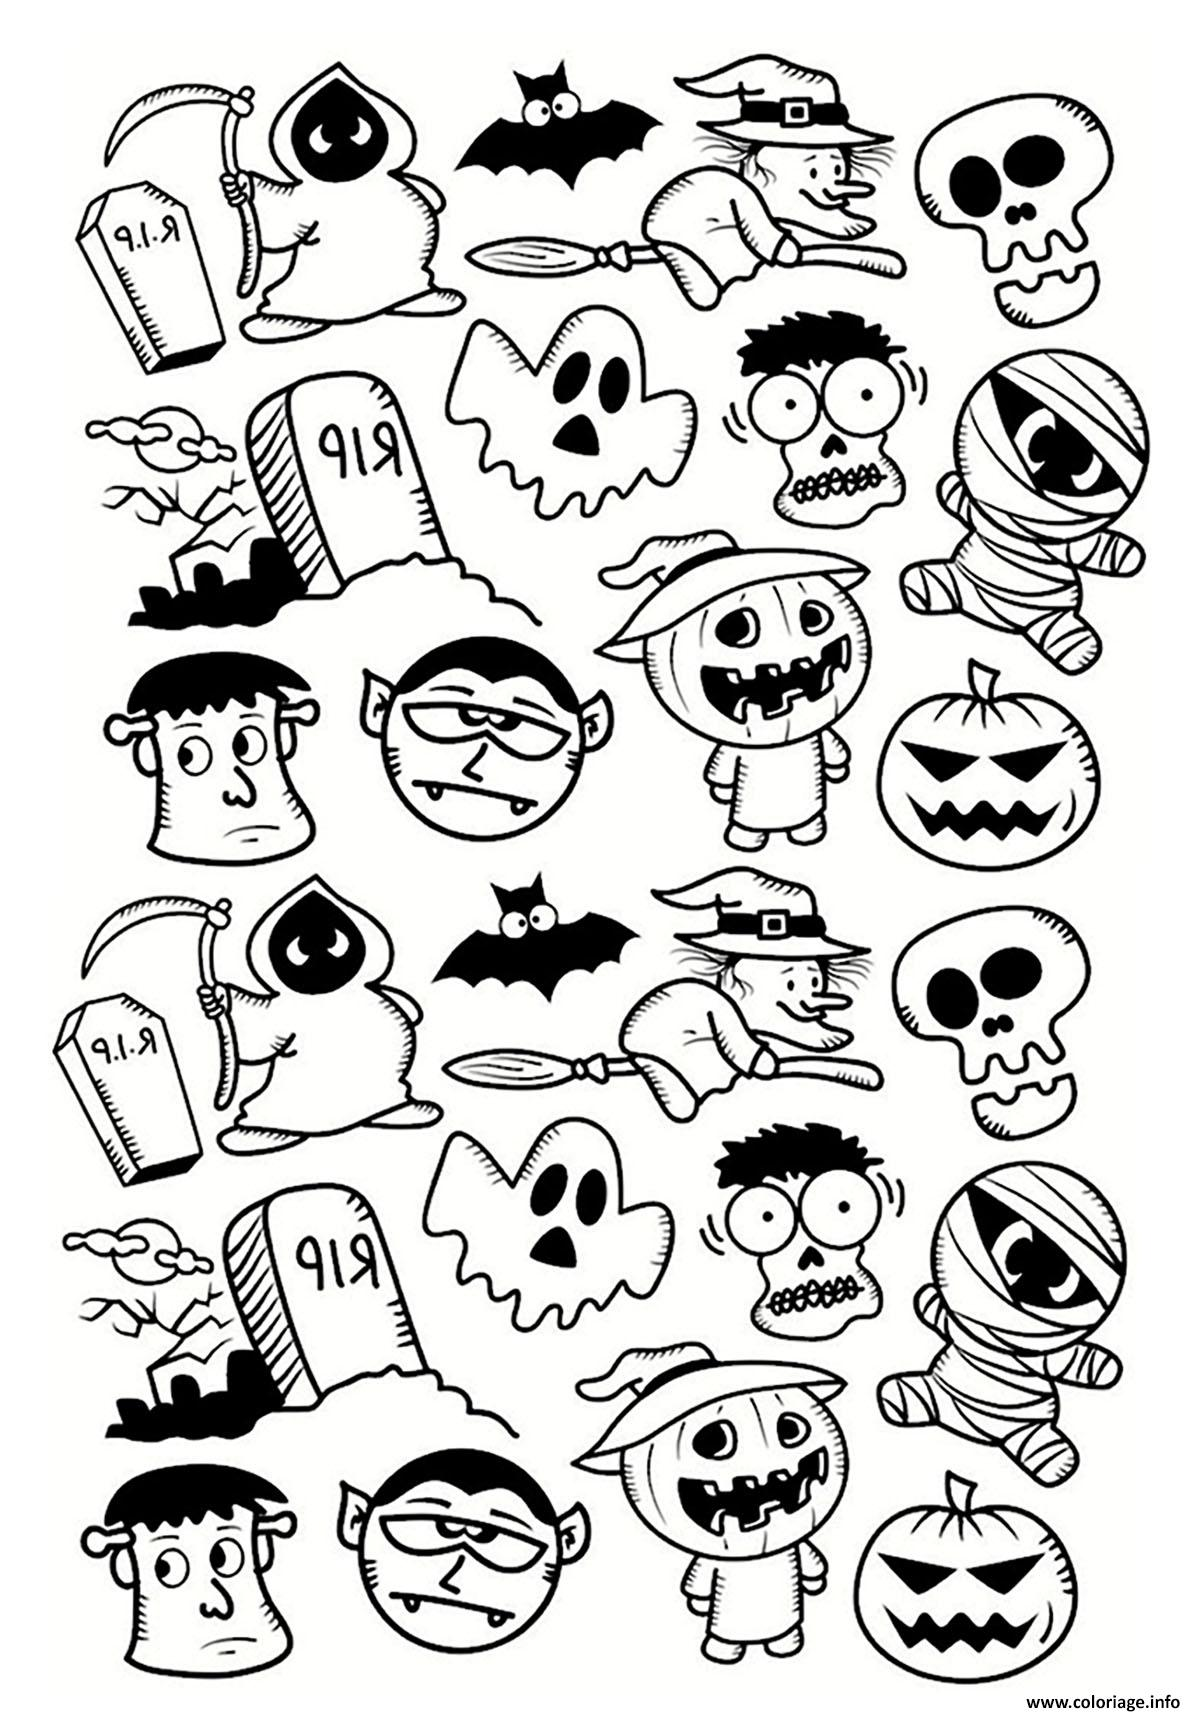 Coloriage halloween personnages doodle dessin - Halloween dessin ...